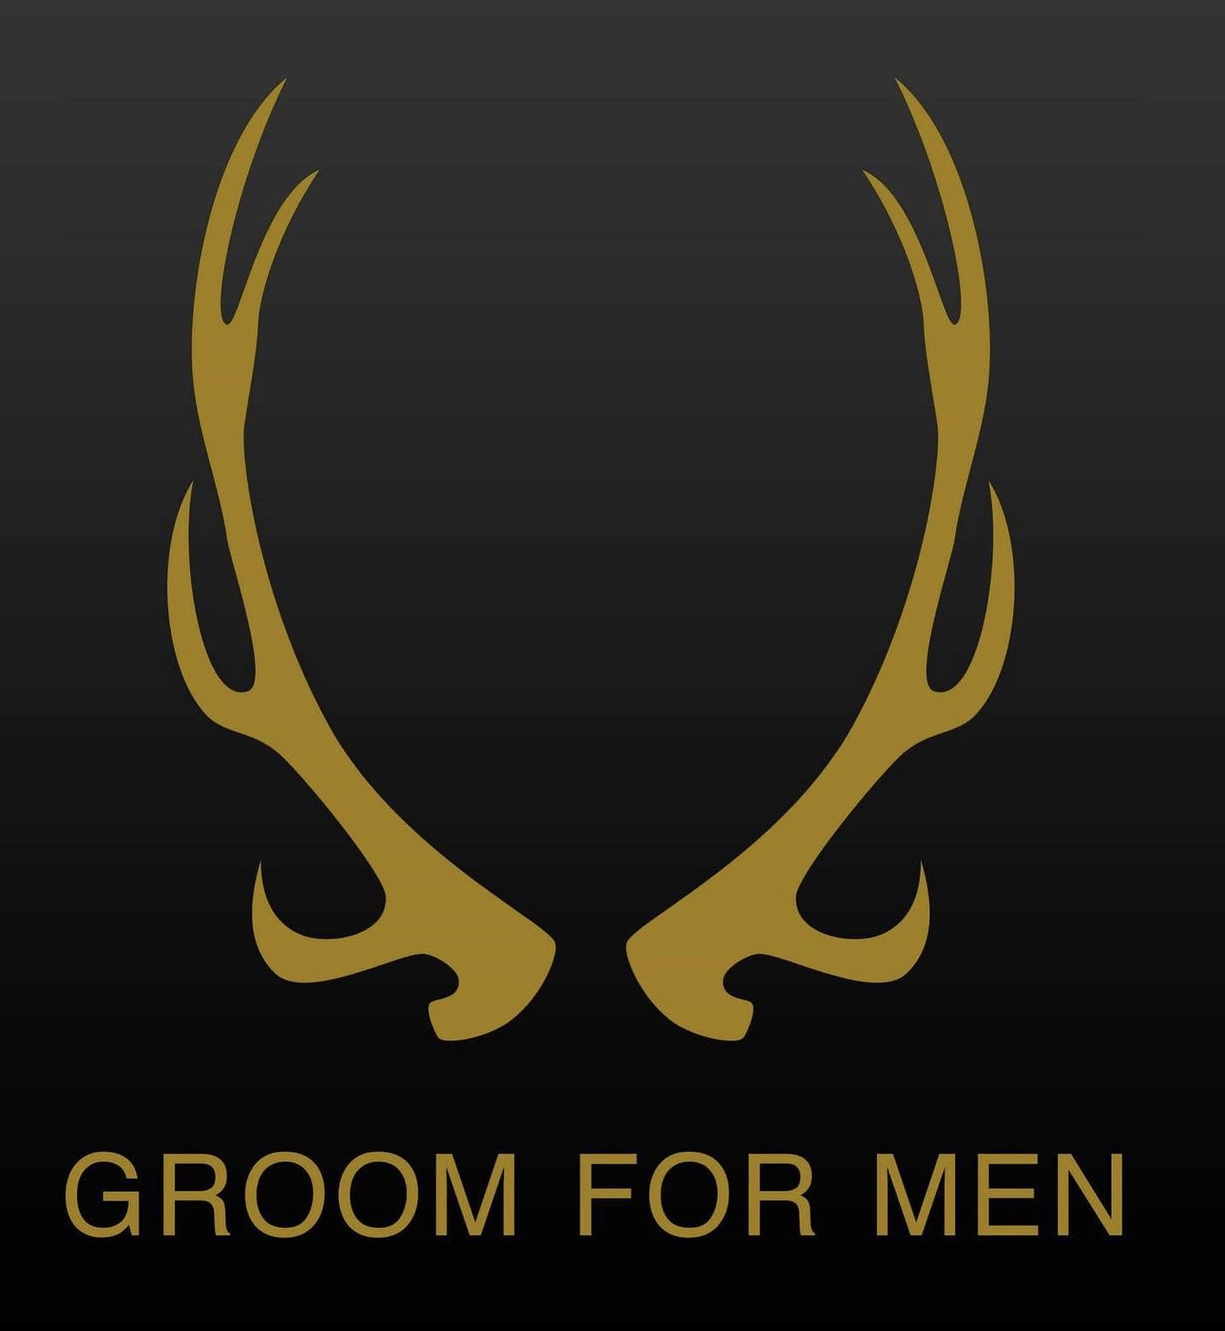 Groom For Men